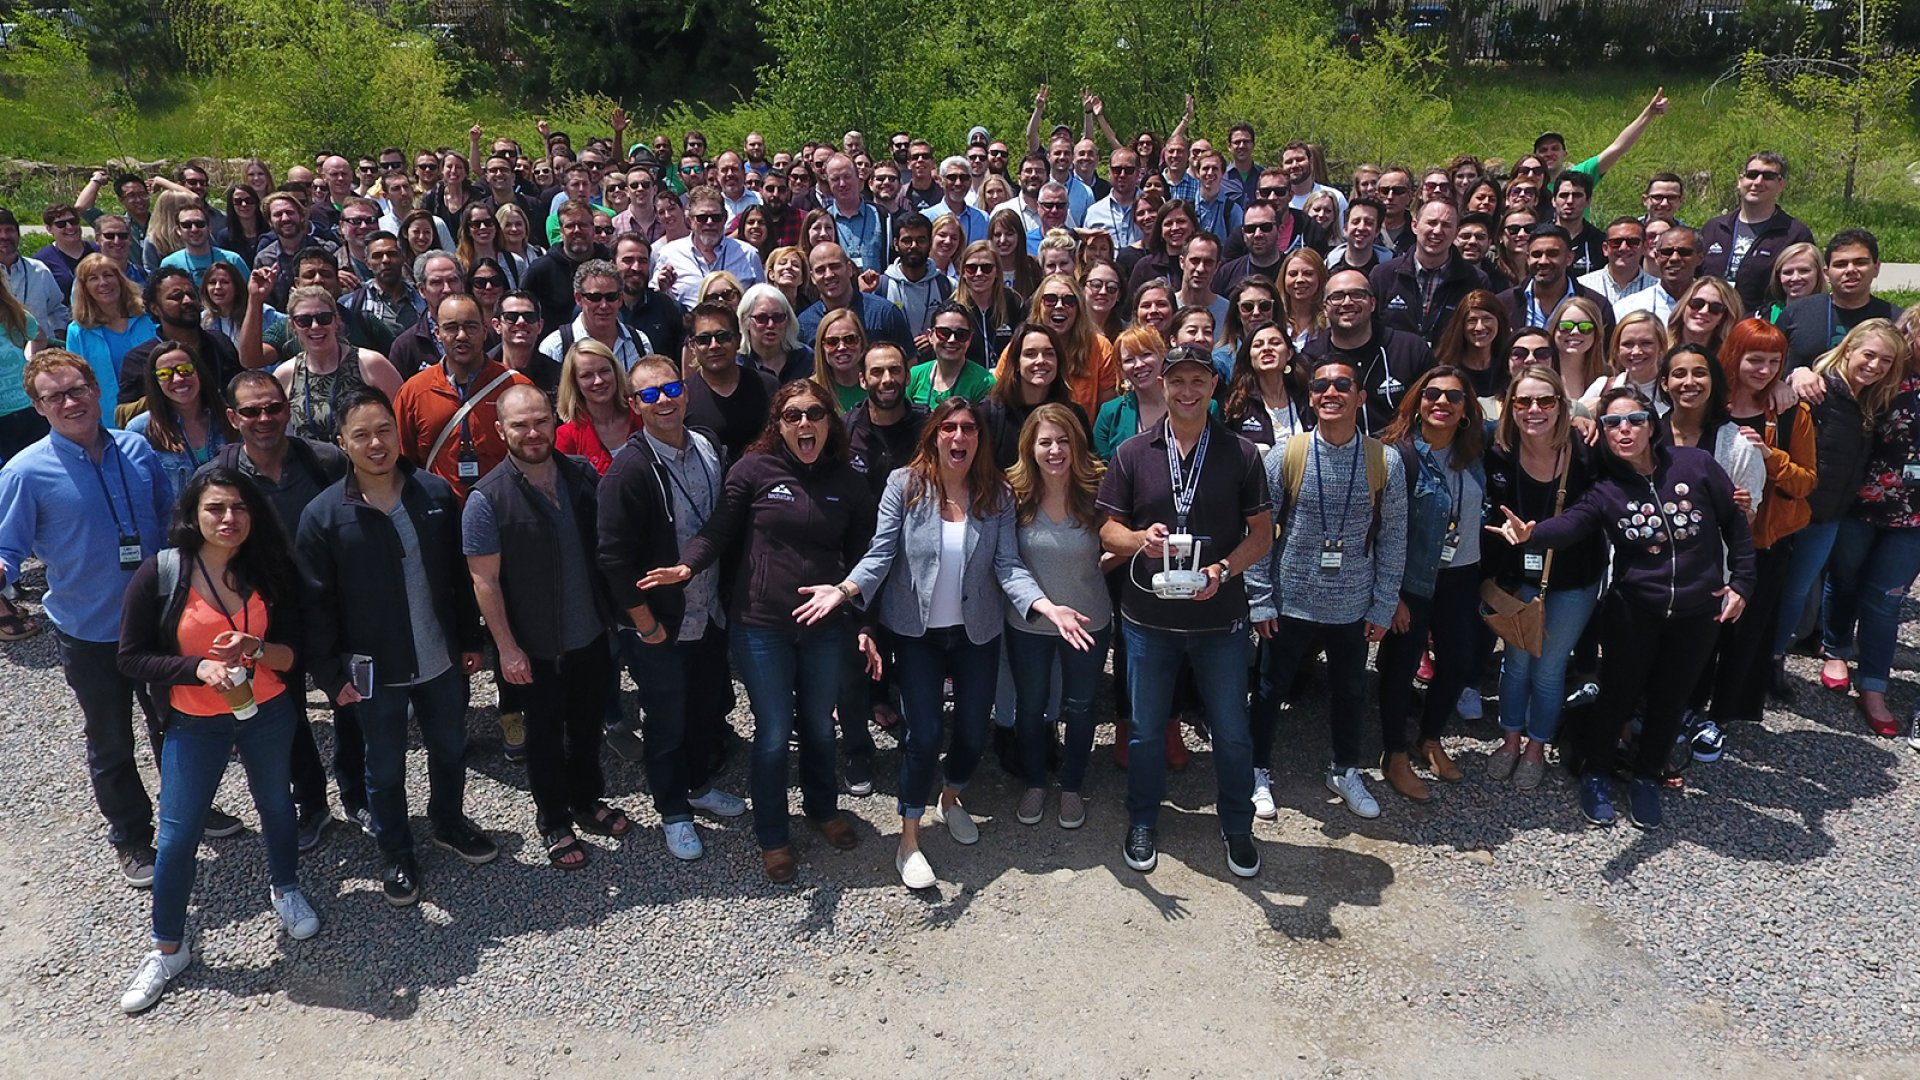 Techstars' global team at the company's annual 2018 StaffCon event.